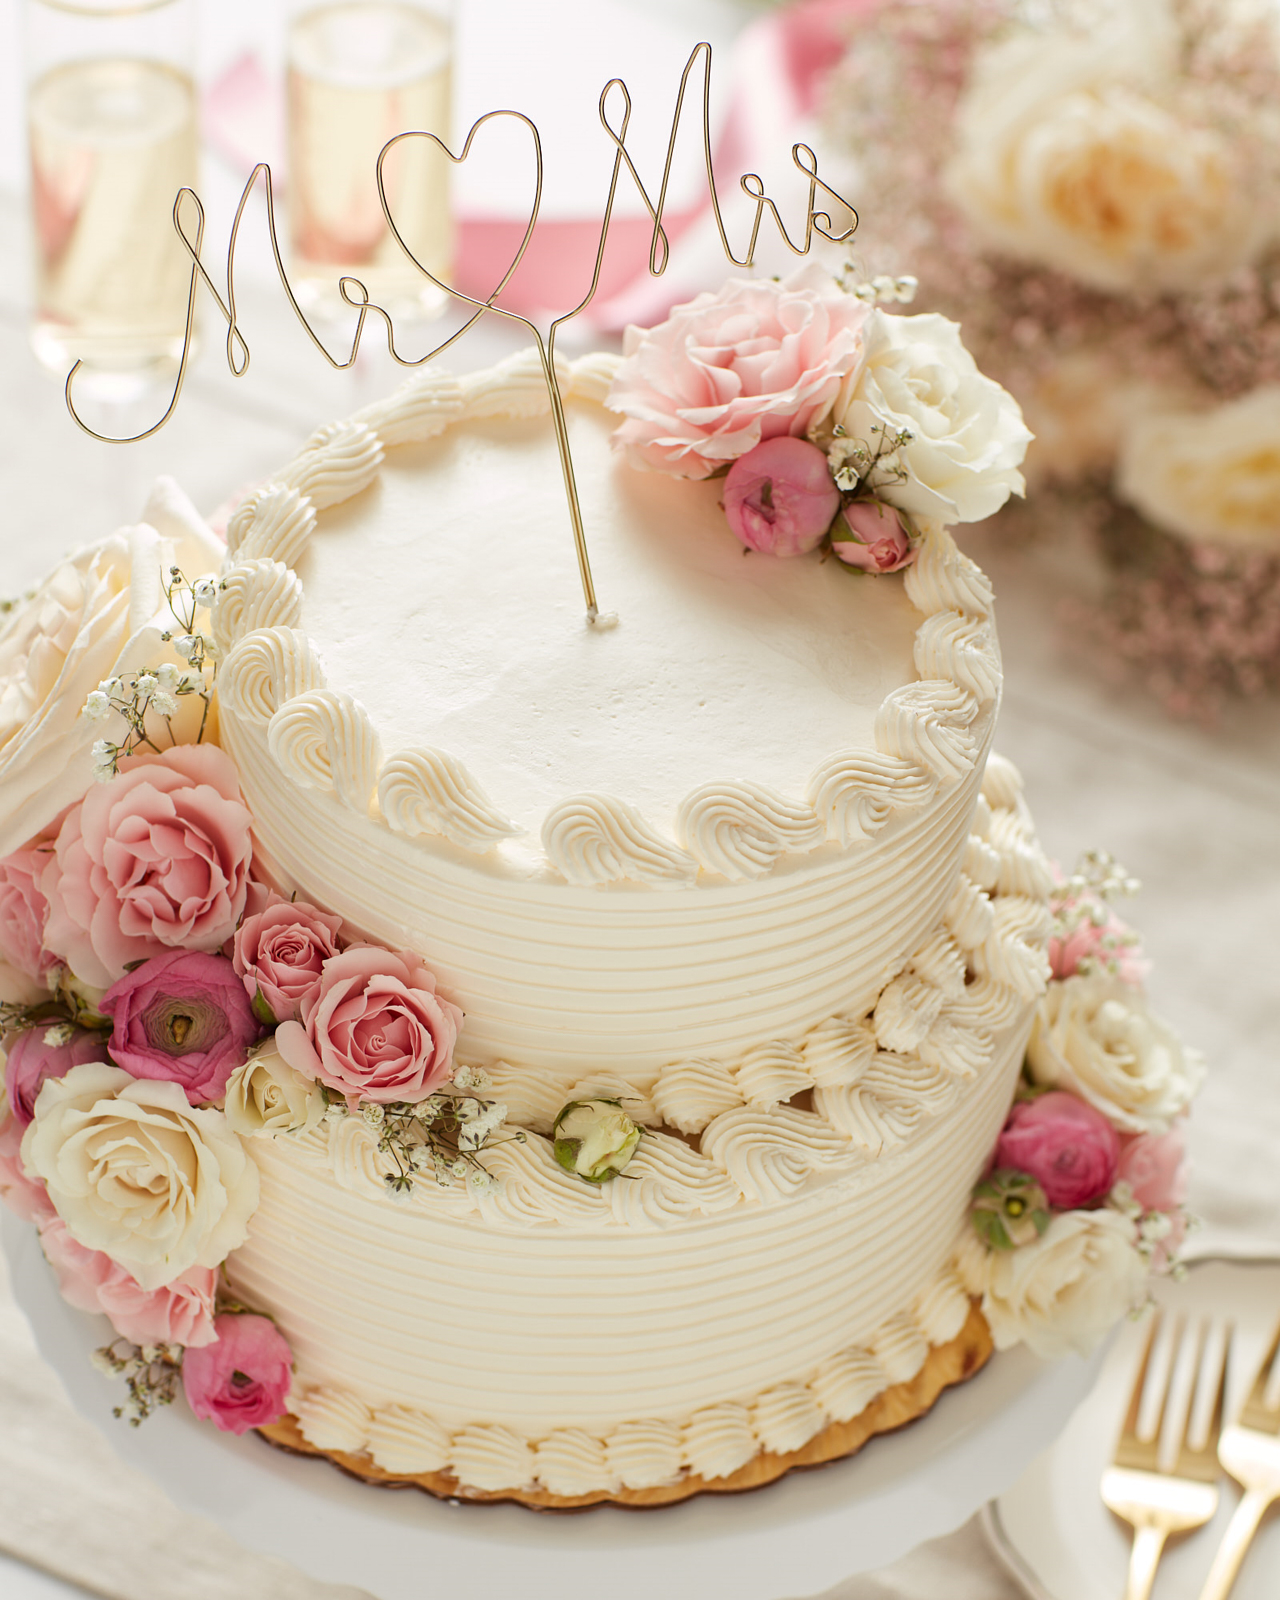 White two-tier wedding cake with pink and white flowers and a Mr and Mrs wire script with heart cake topper